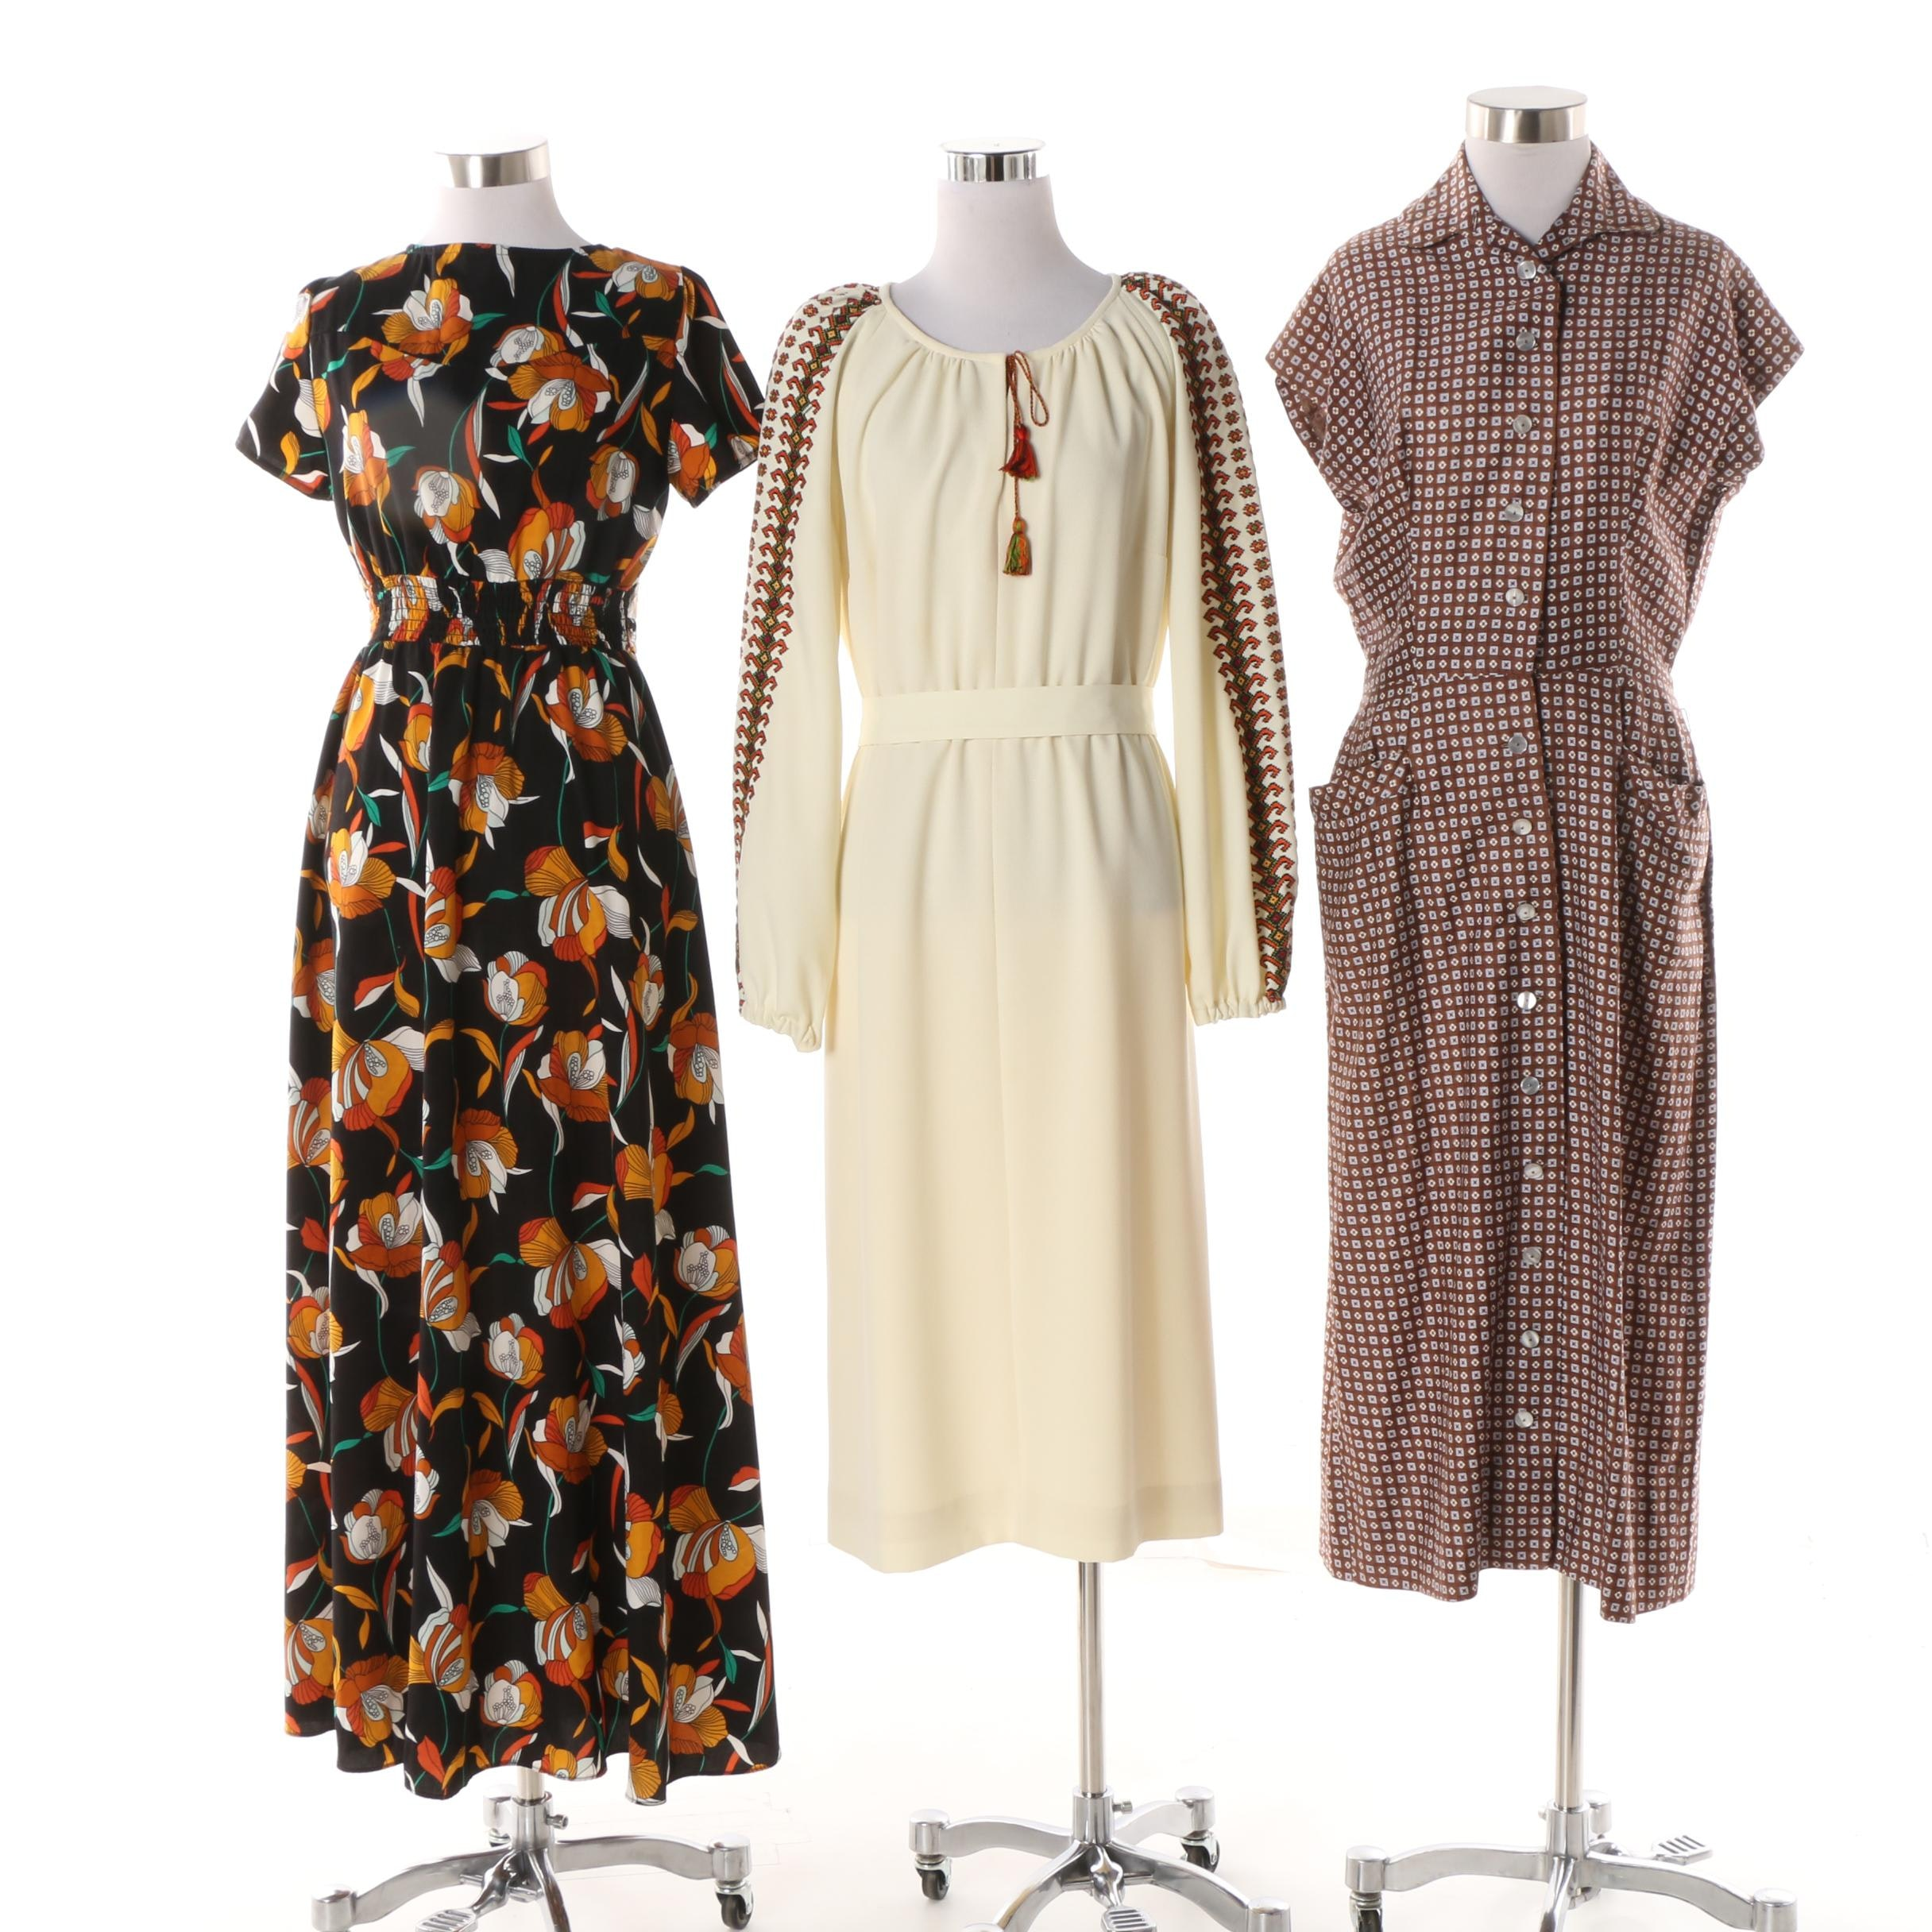 Mid-20th Century Dress Suit and Dresses